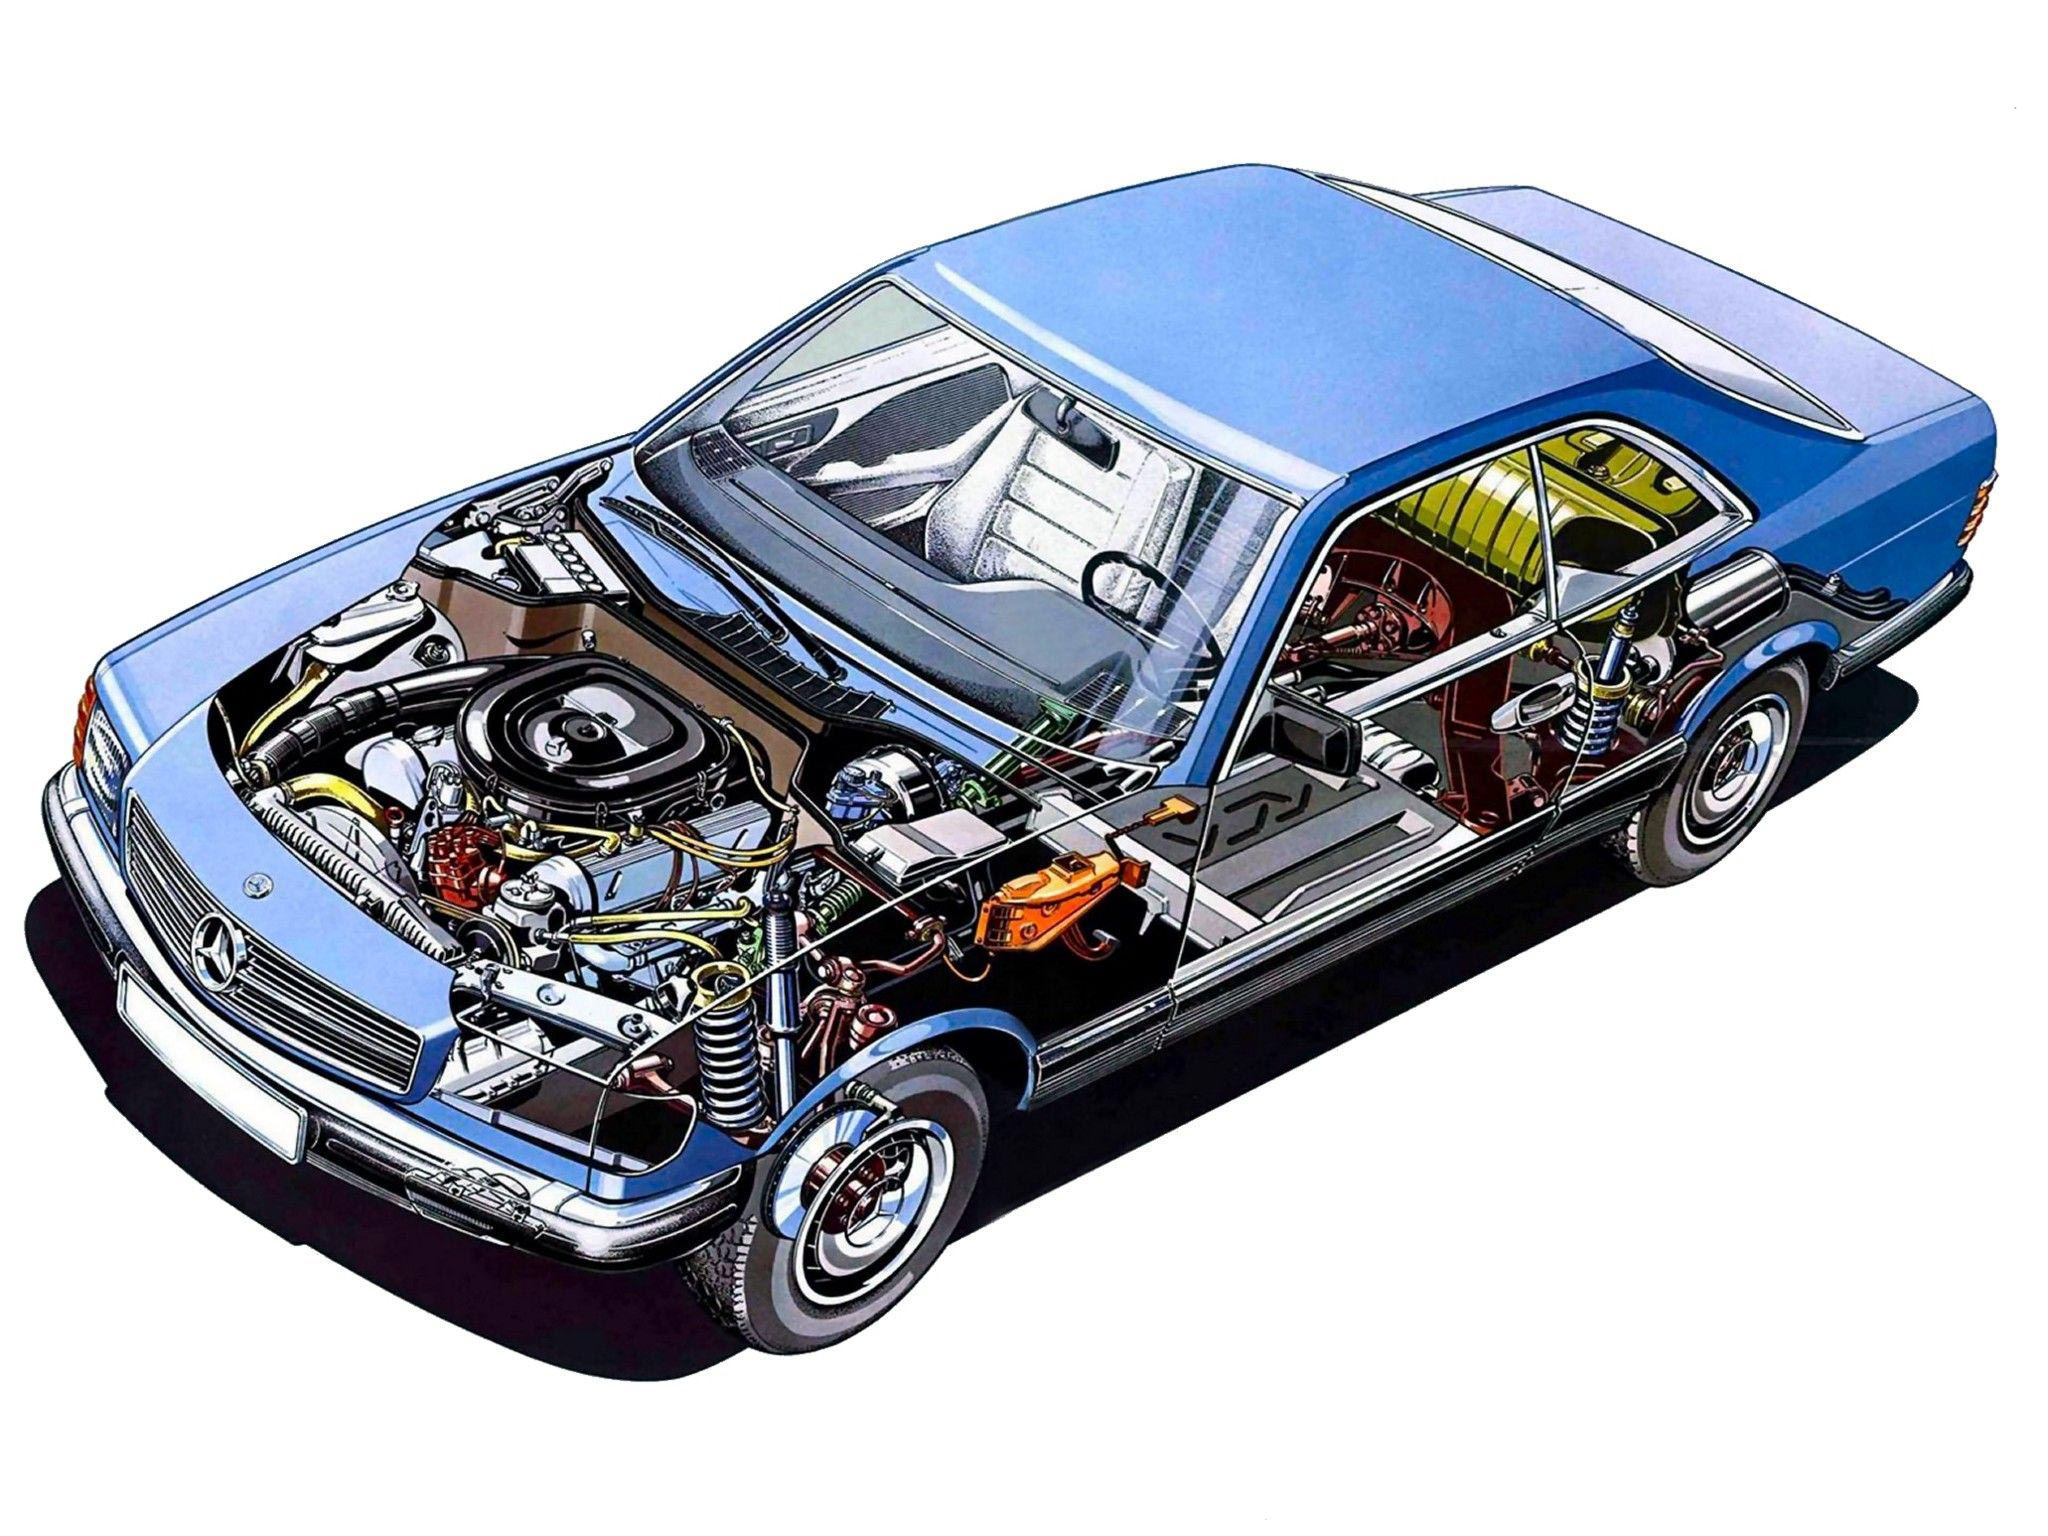 Mercedes-Benz S-class c126 cutaway drawings